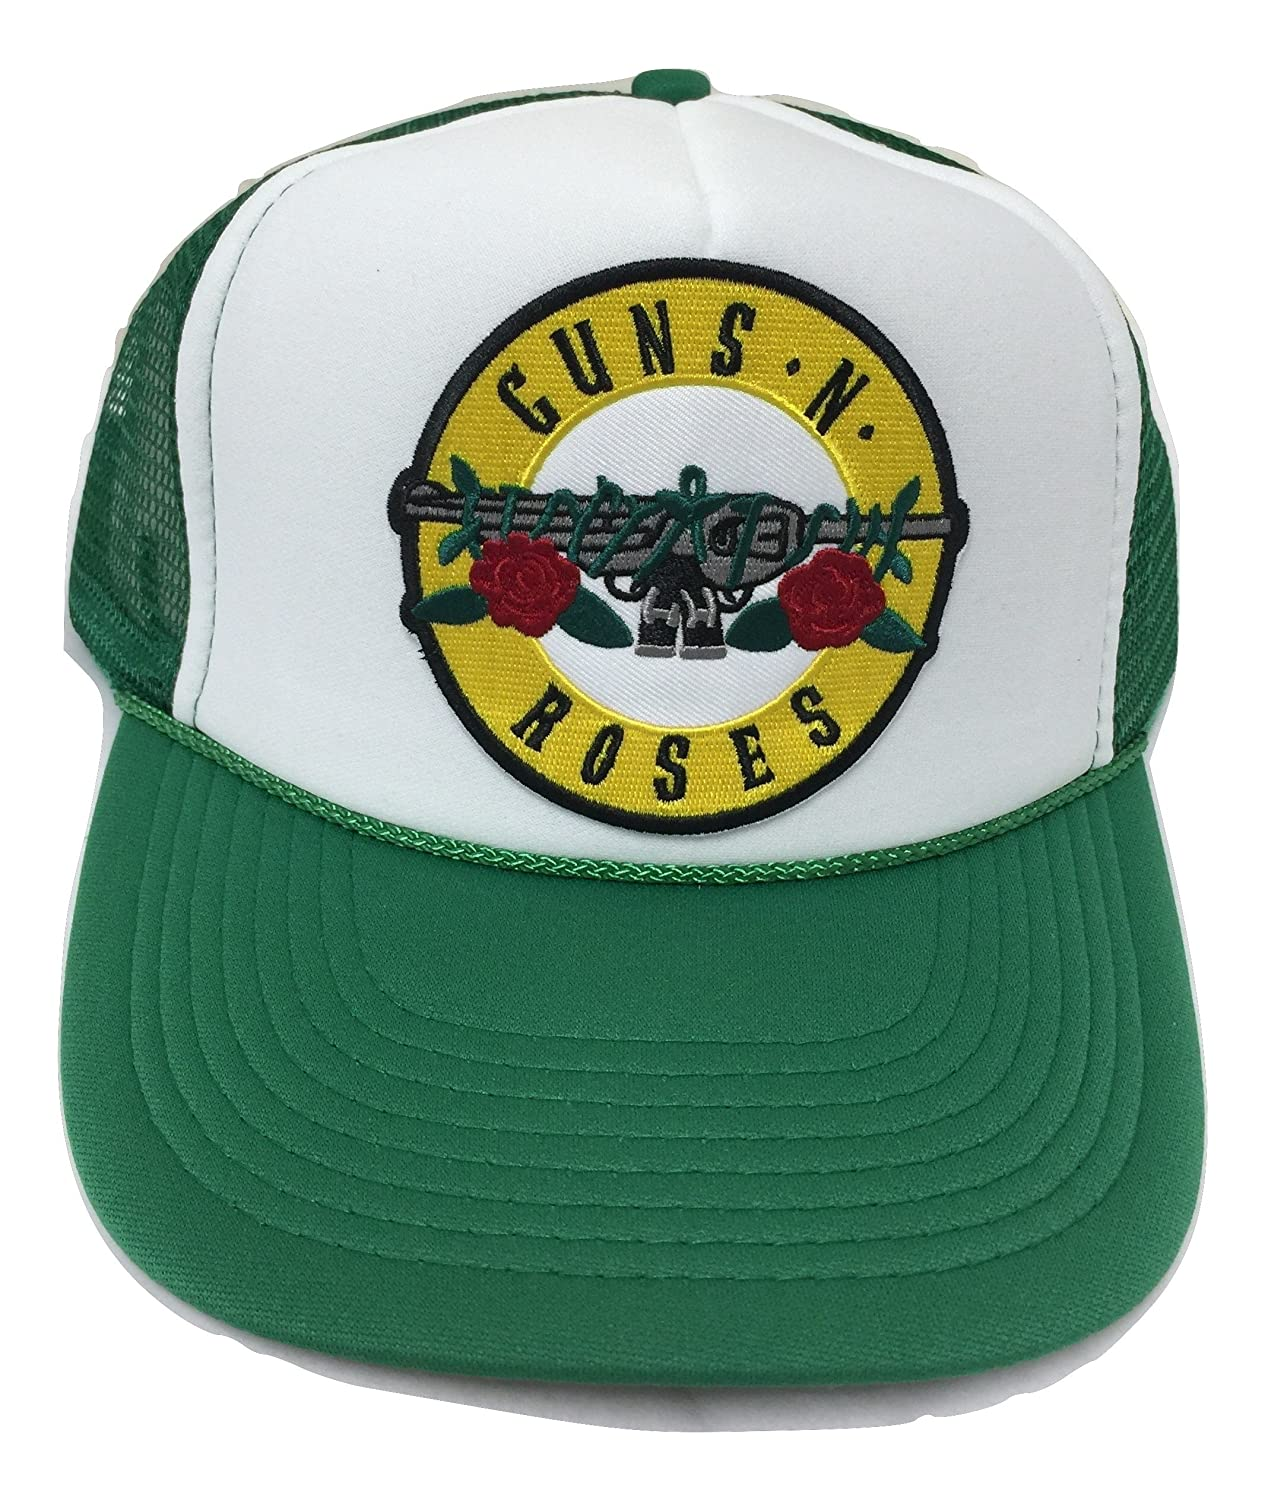 Guns N Roses Trucker Style Baseball Cap with Snapback in Kelly Green and White Landfilldzine